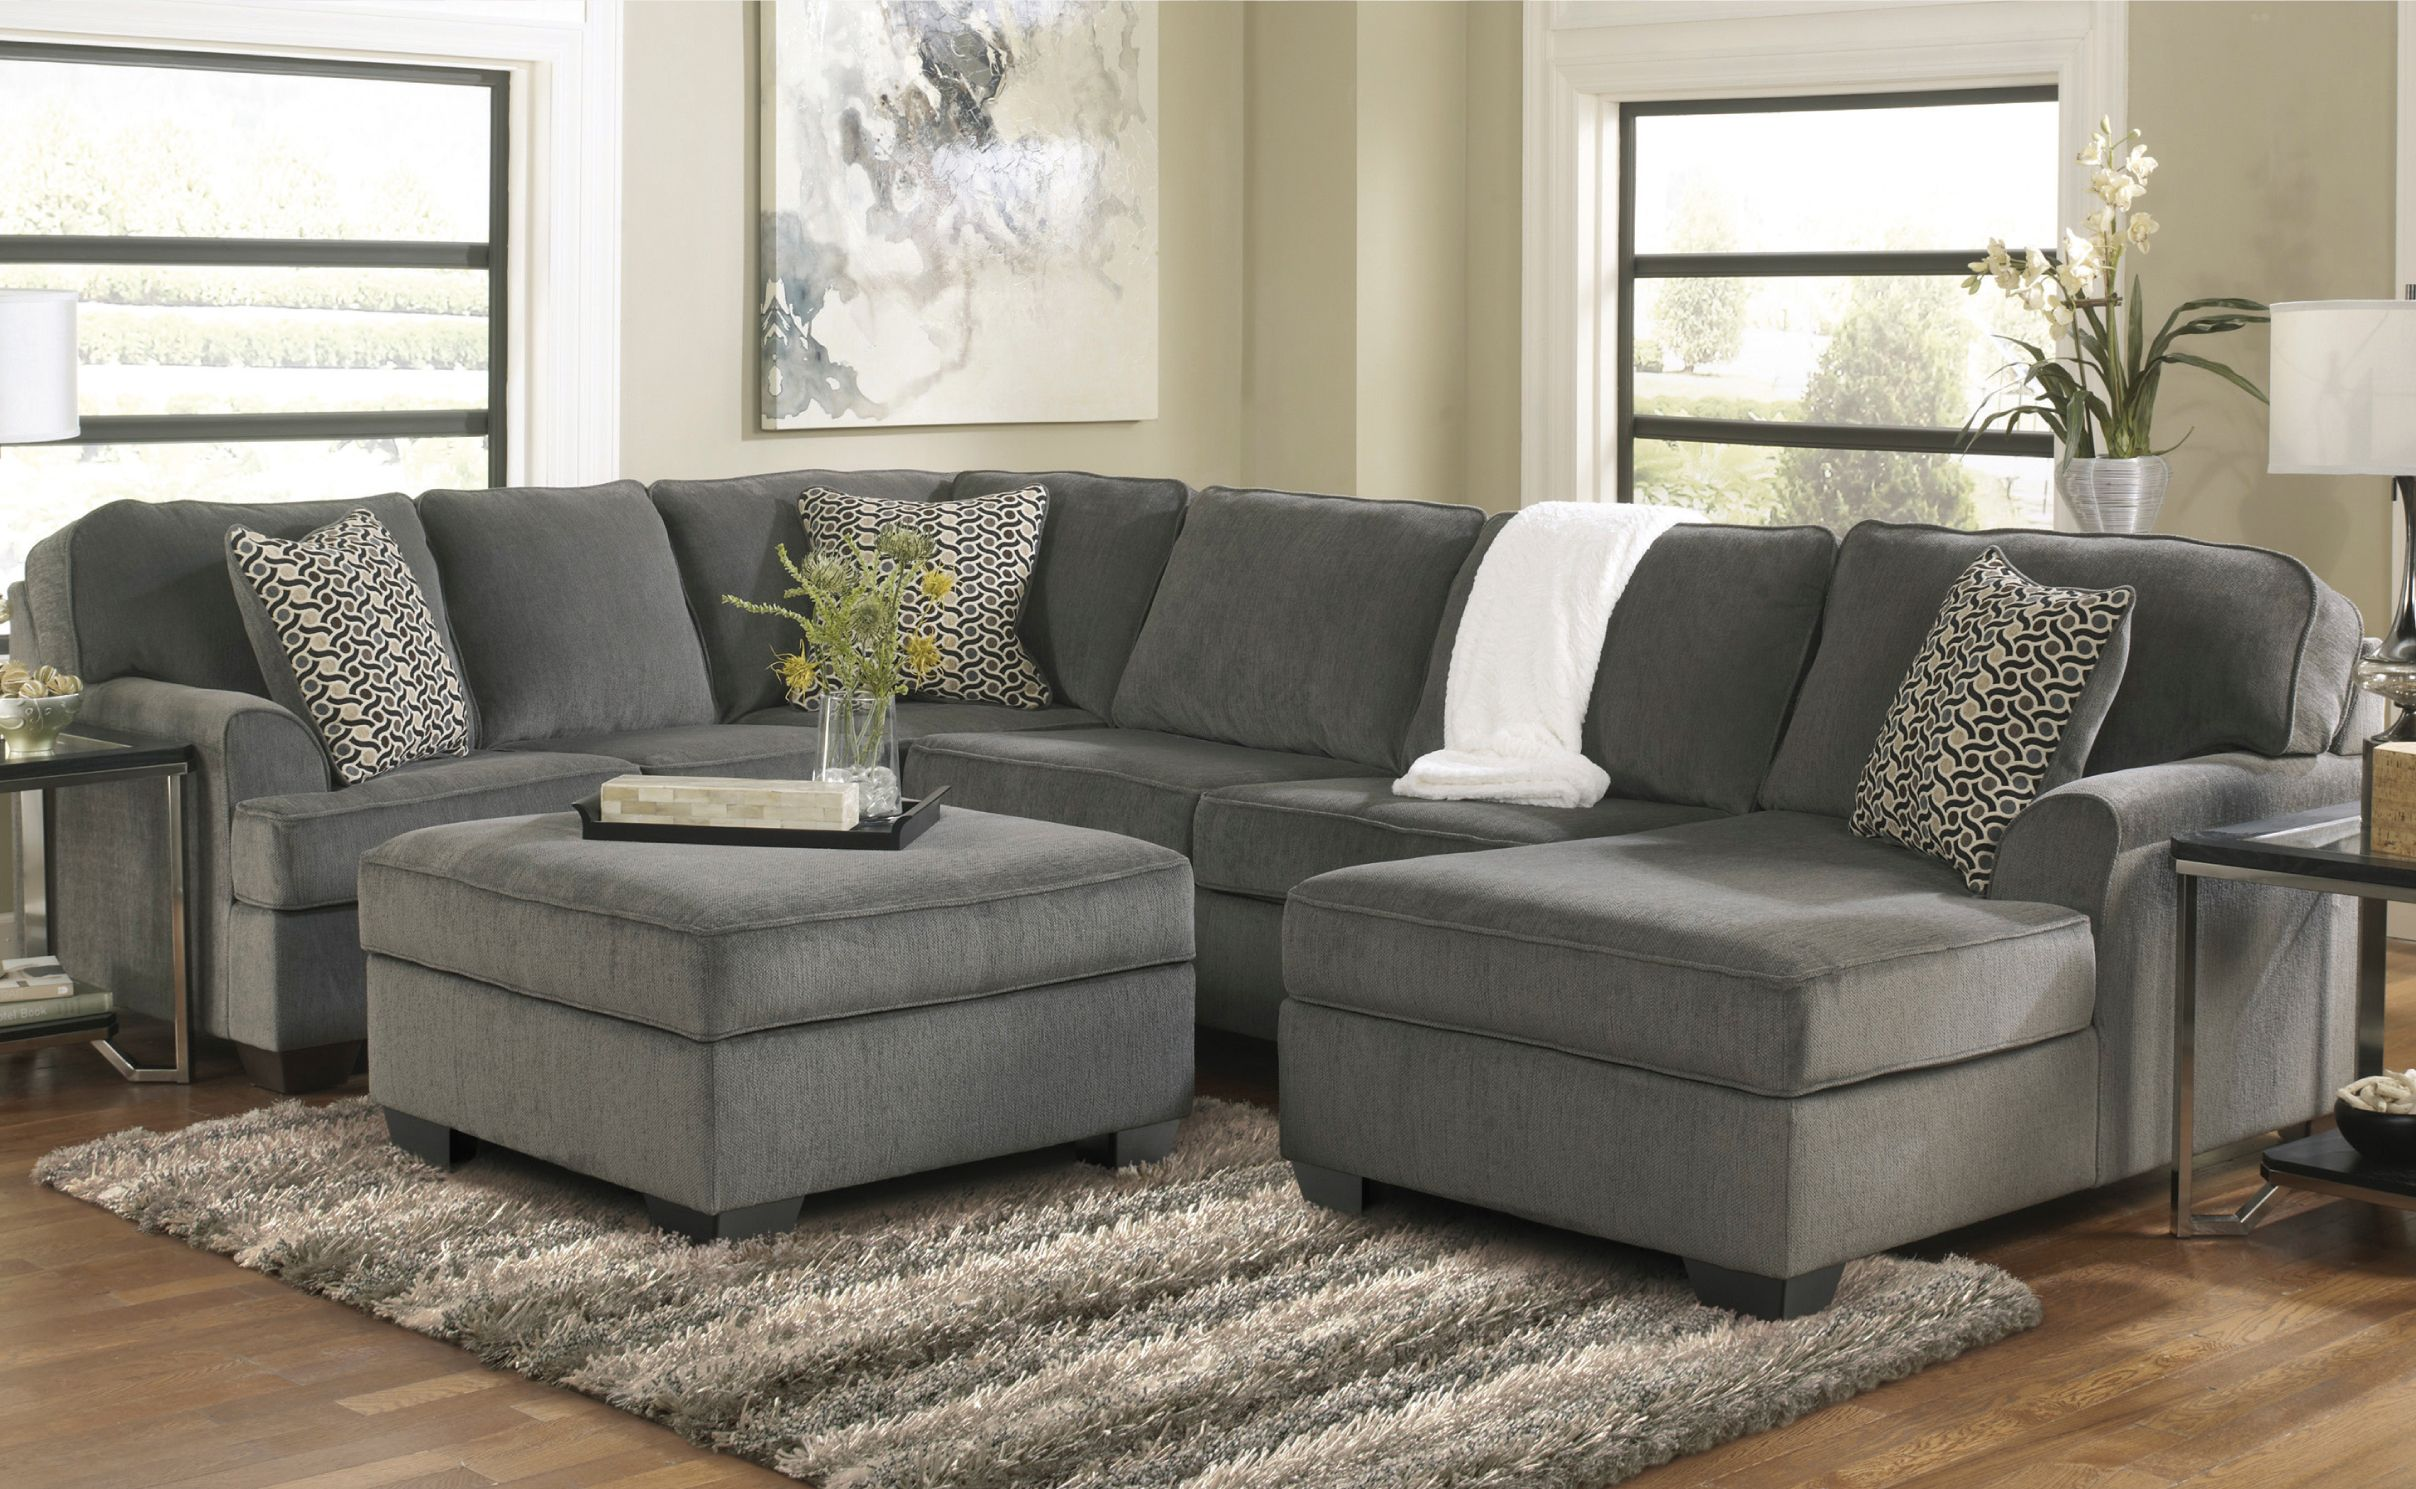 Sectional Sofa Clearance American Home Furniture Cheap Living